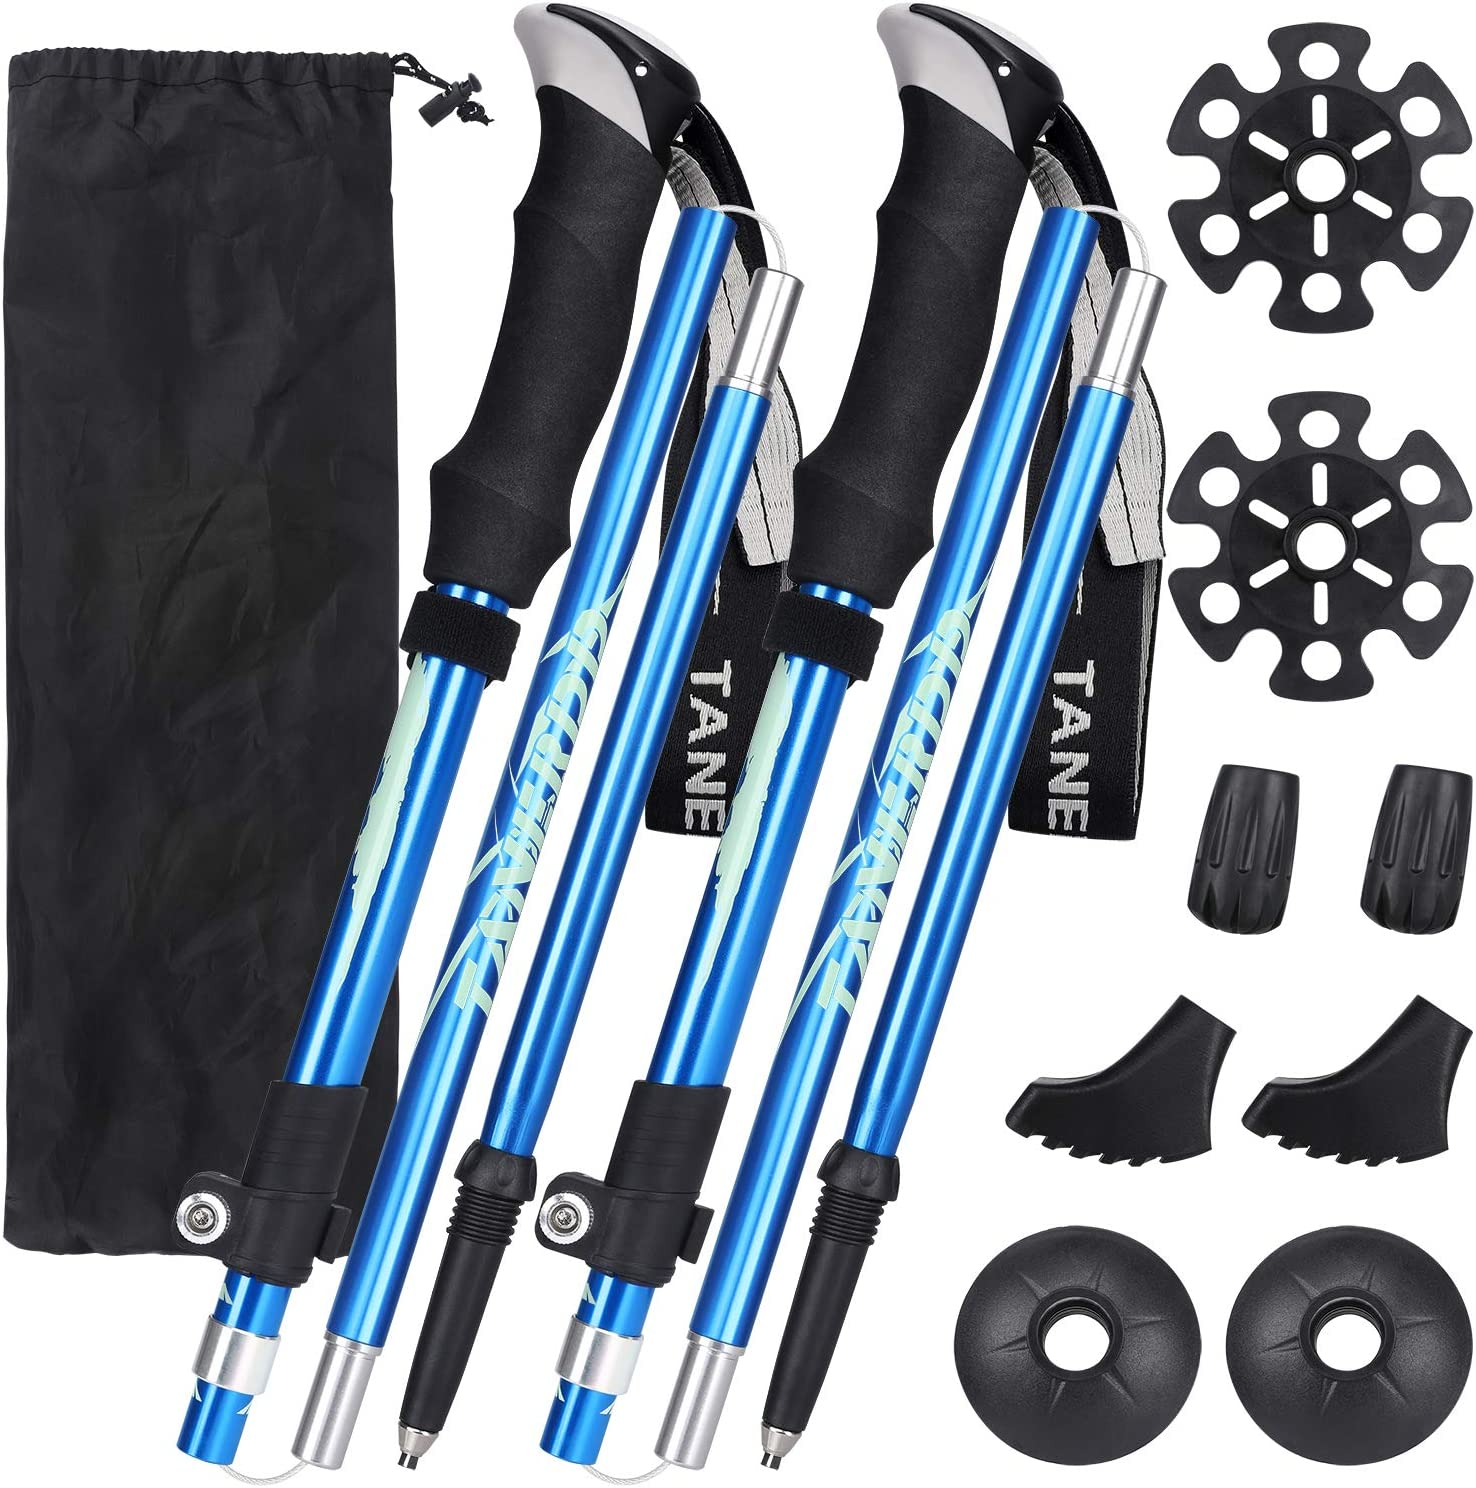 Esup Max 60% OFF Trekking Poles Collapsible Hiking Alloy gift Aluminum 7075